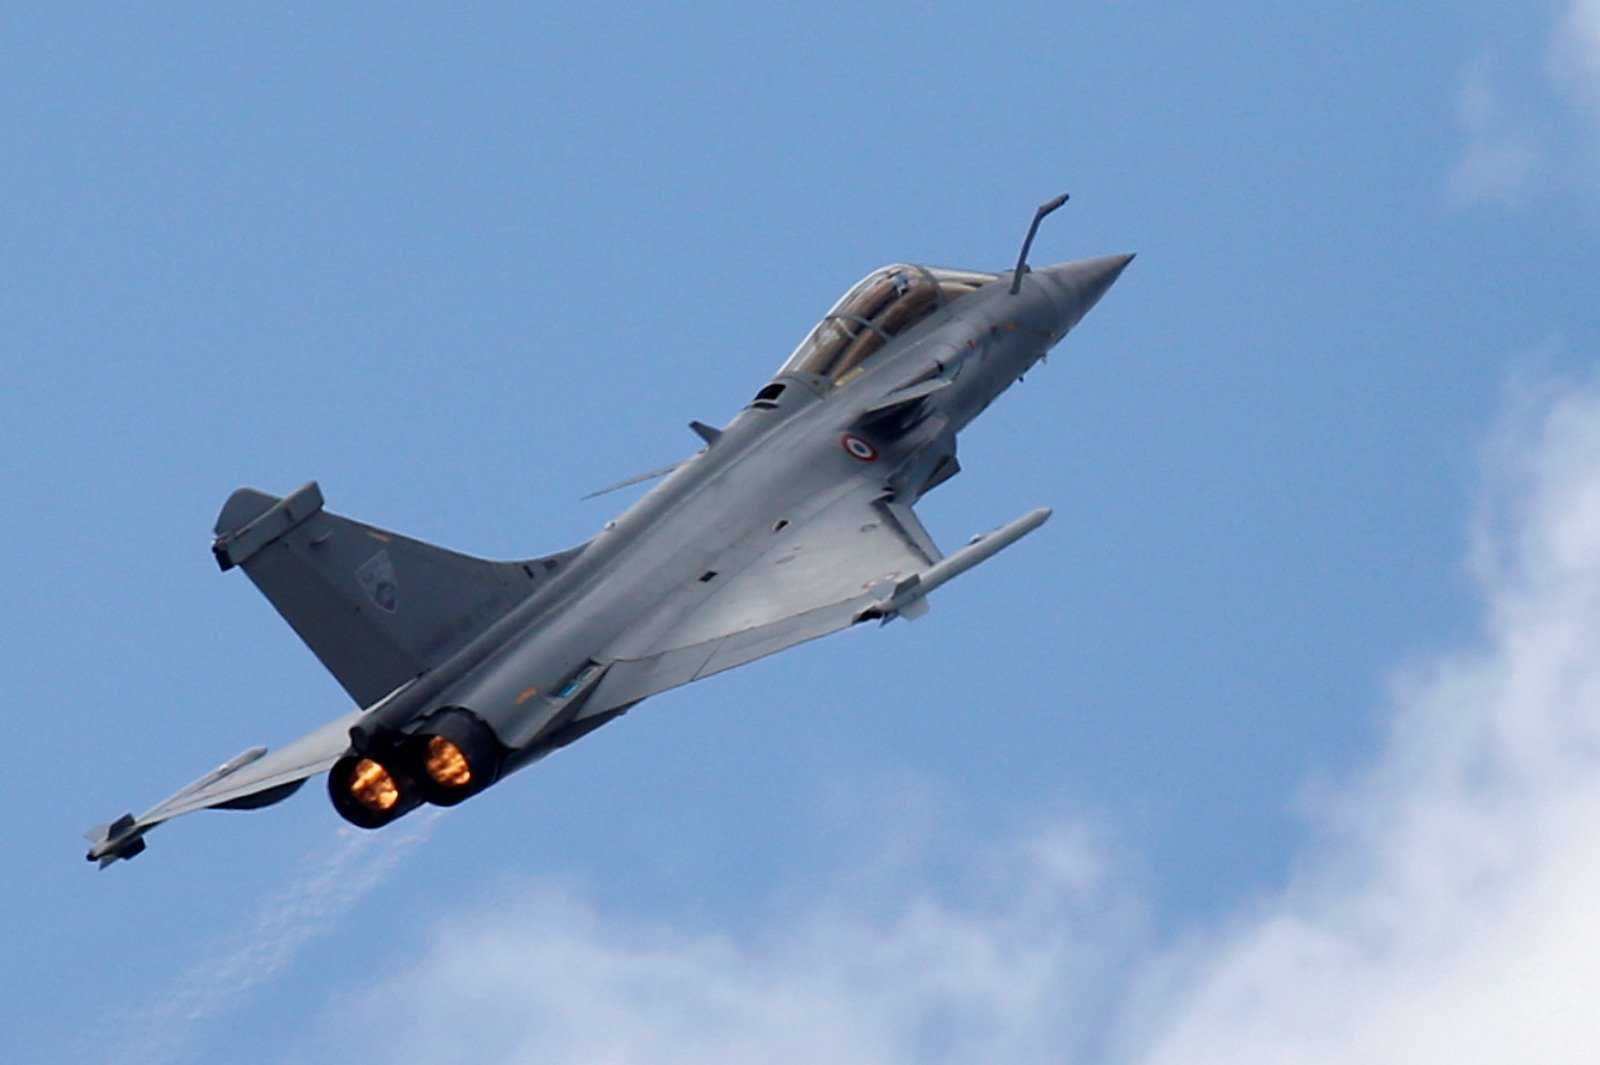 France's Dassault Rafale Is No Competition for the F-35